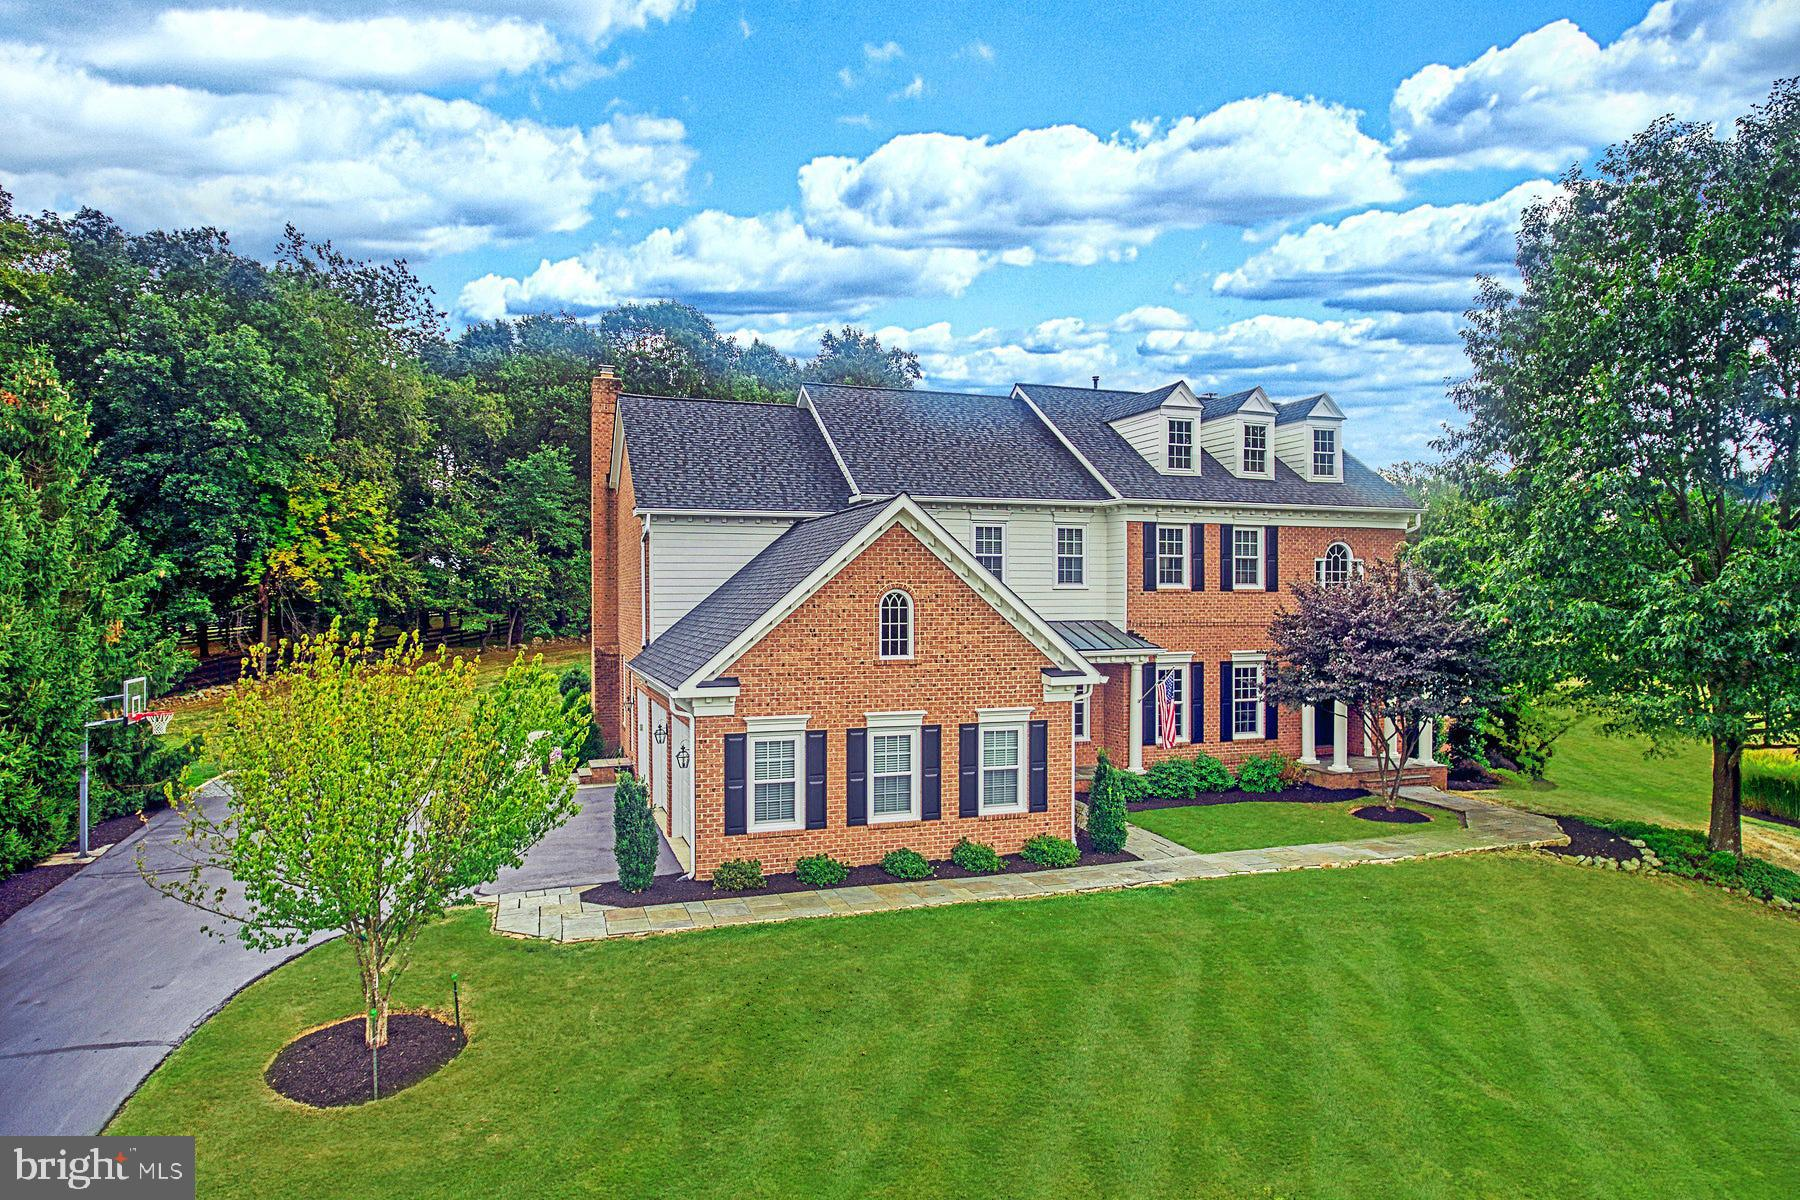 Situated on an elevated 3-acre estate lot in Beacon Hill, this stately all brick custom residence bu